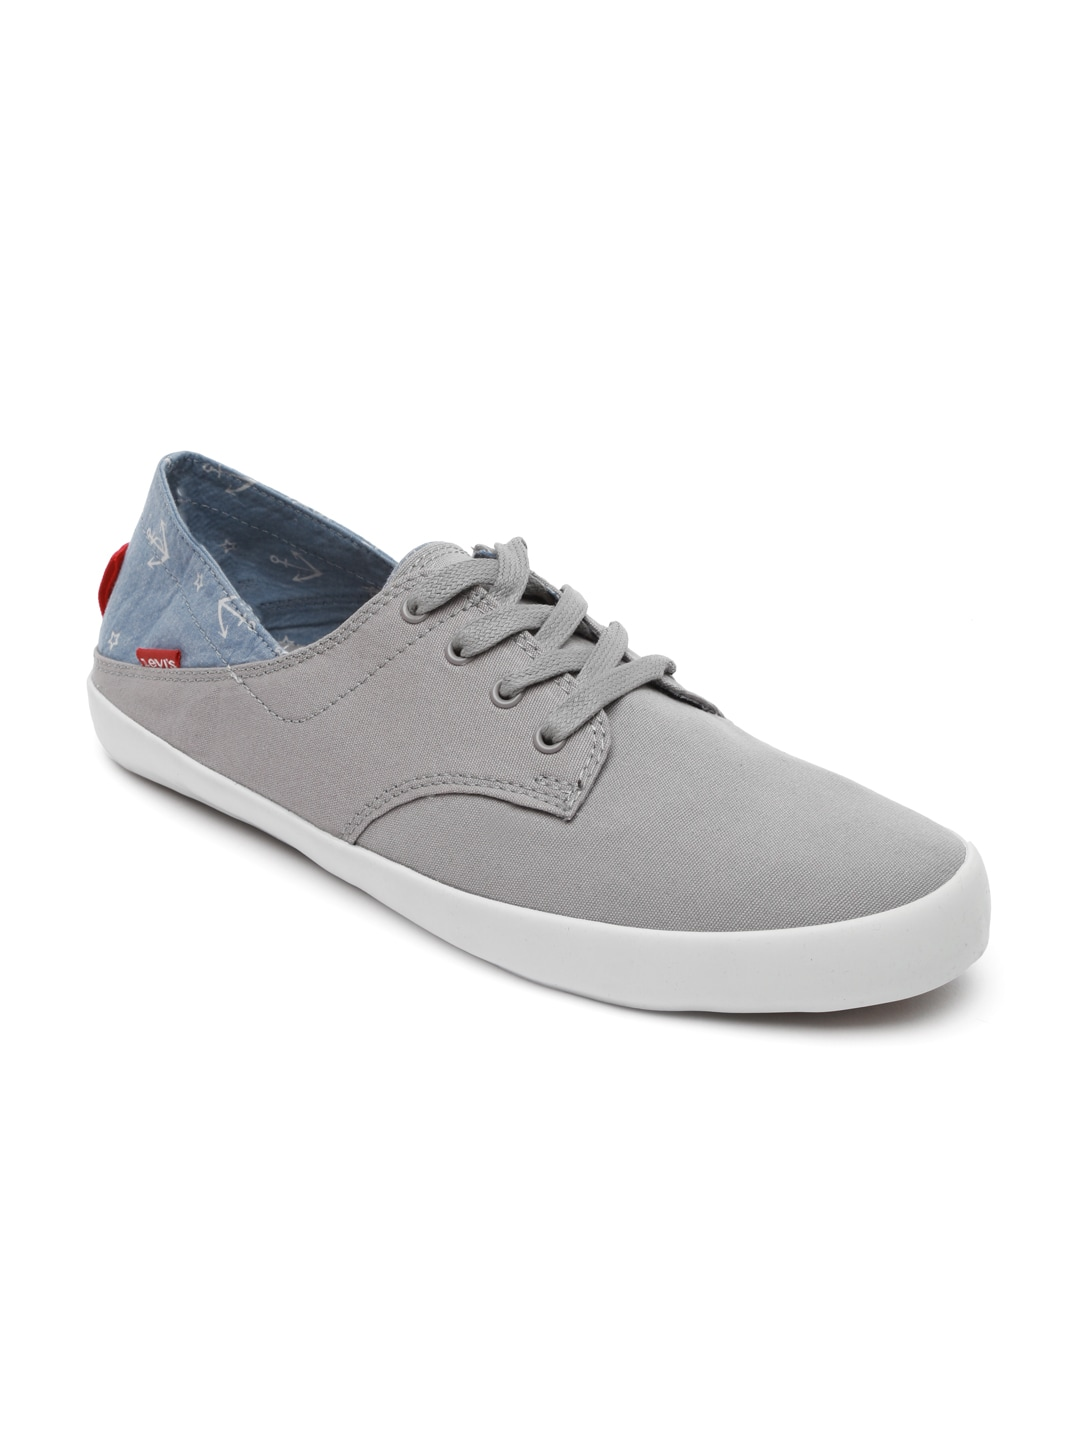 buy levi s grey casual shoes 632 footwear for